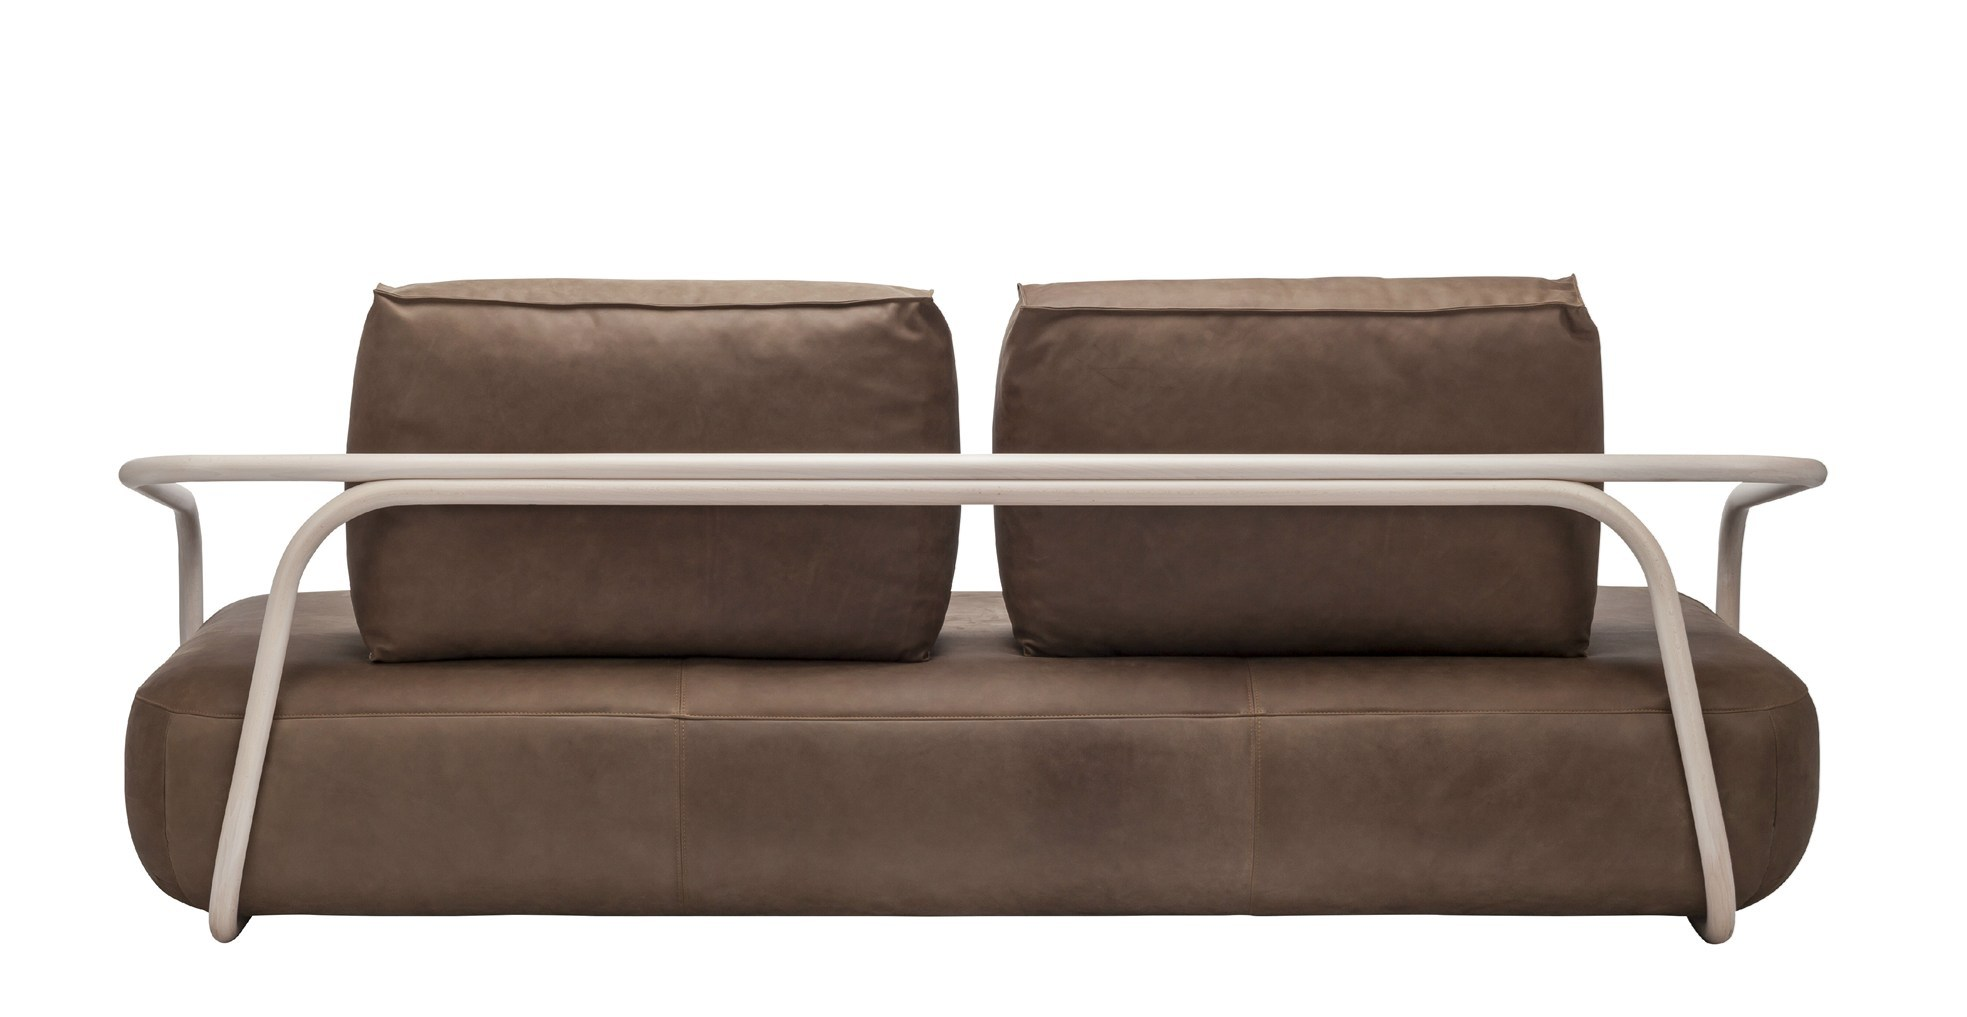 Sofa 2002 by Christian Werner for Thonet